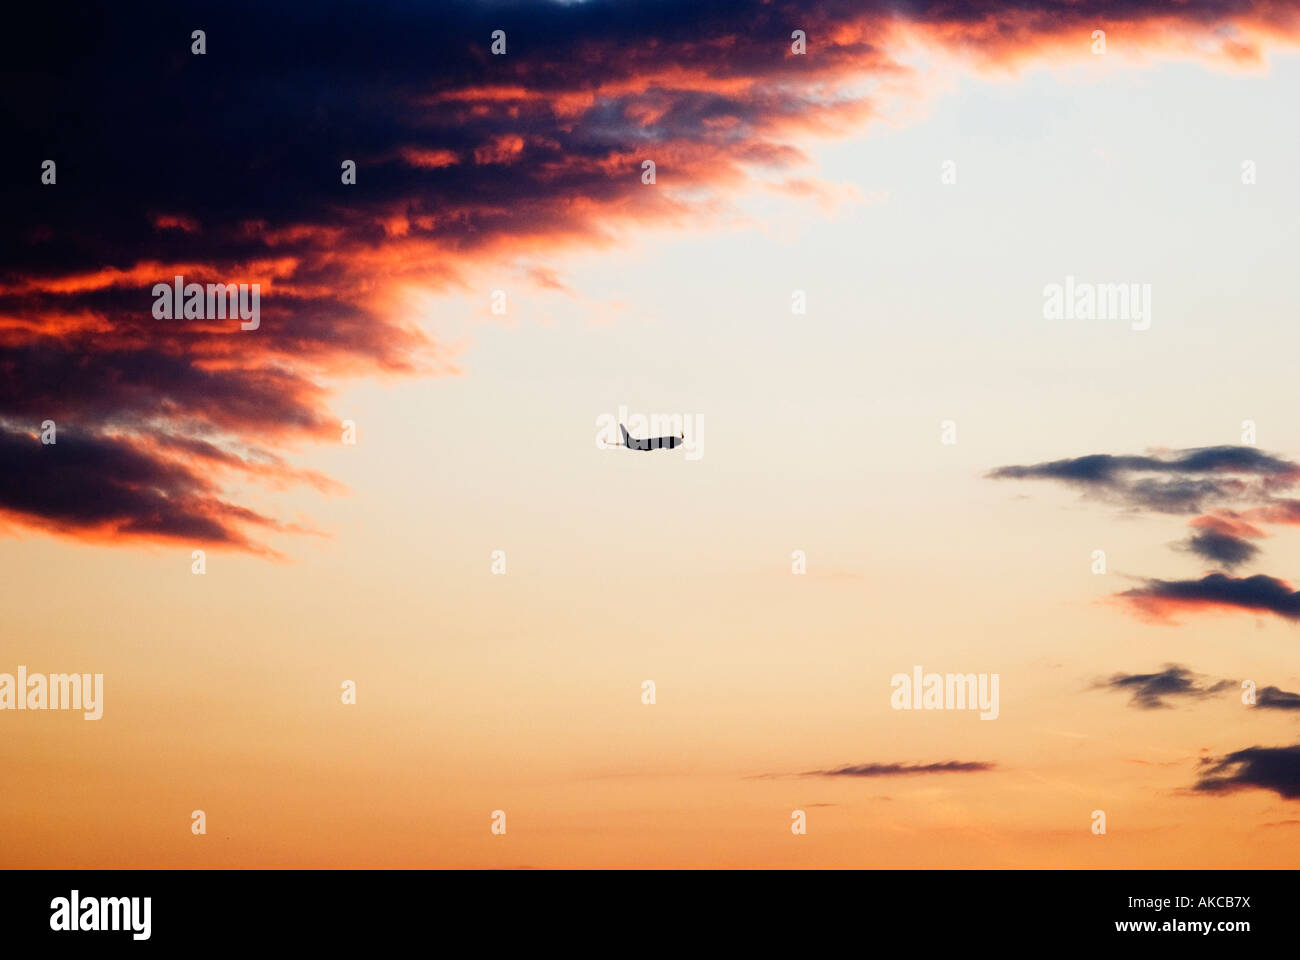 Air Force One after take off in a firing cloudy red and orange sunset - Stock Image